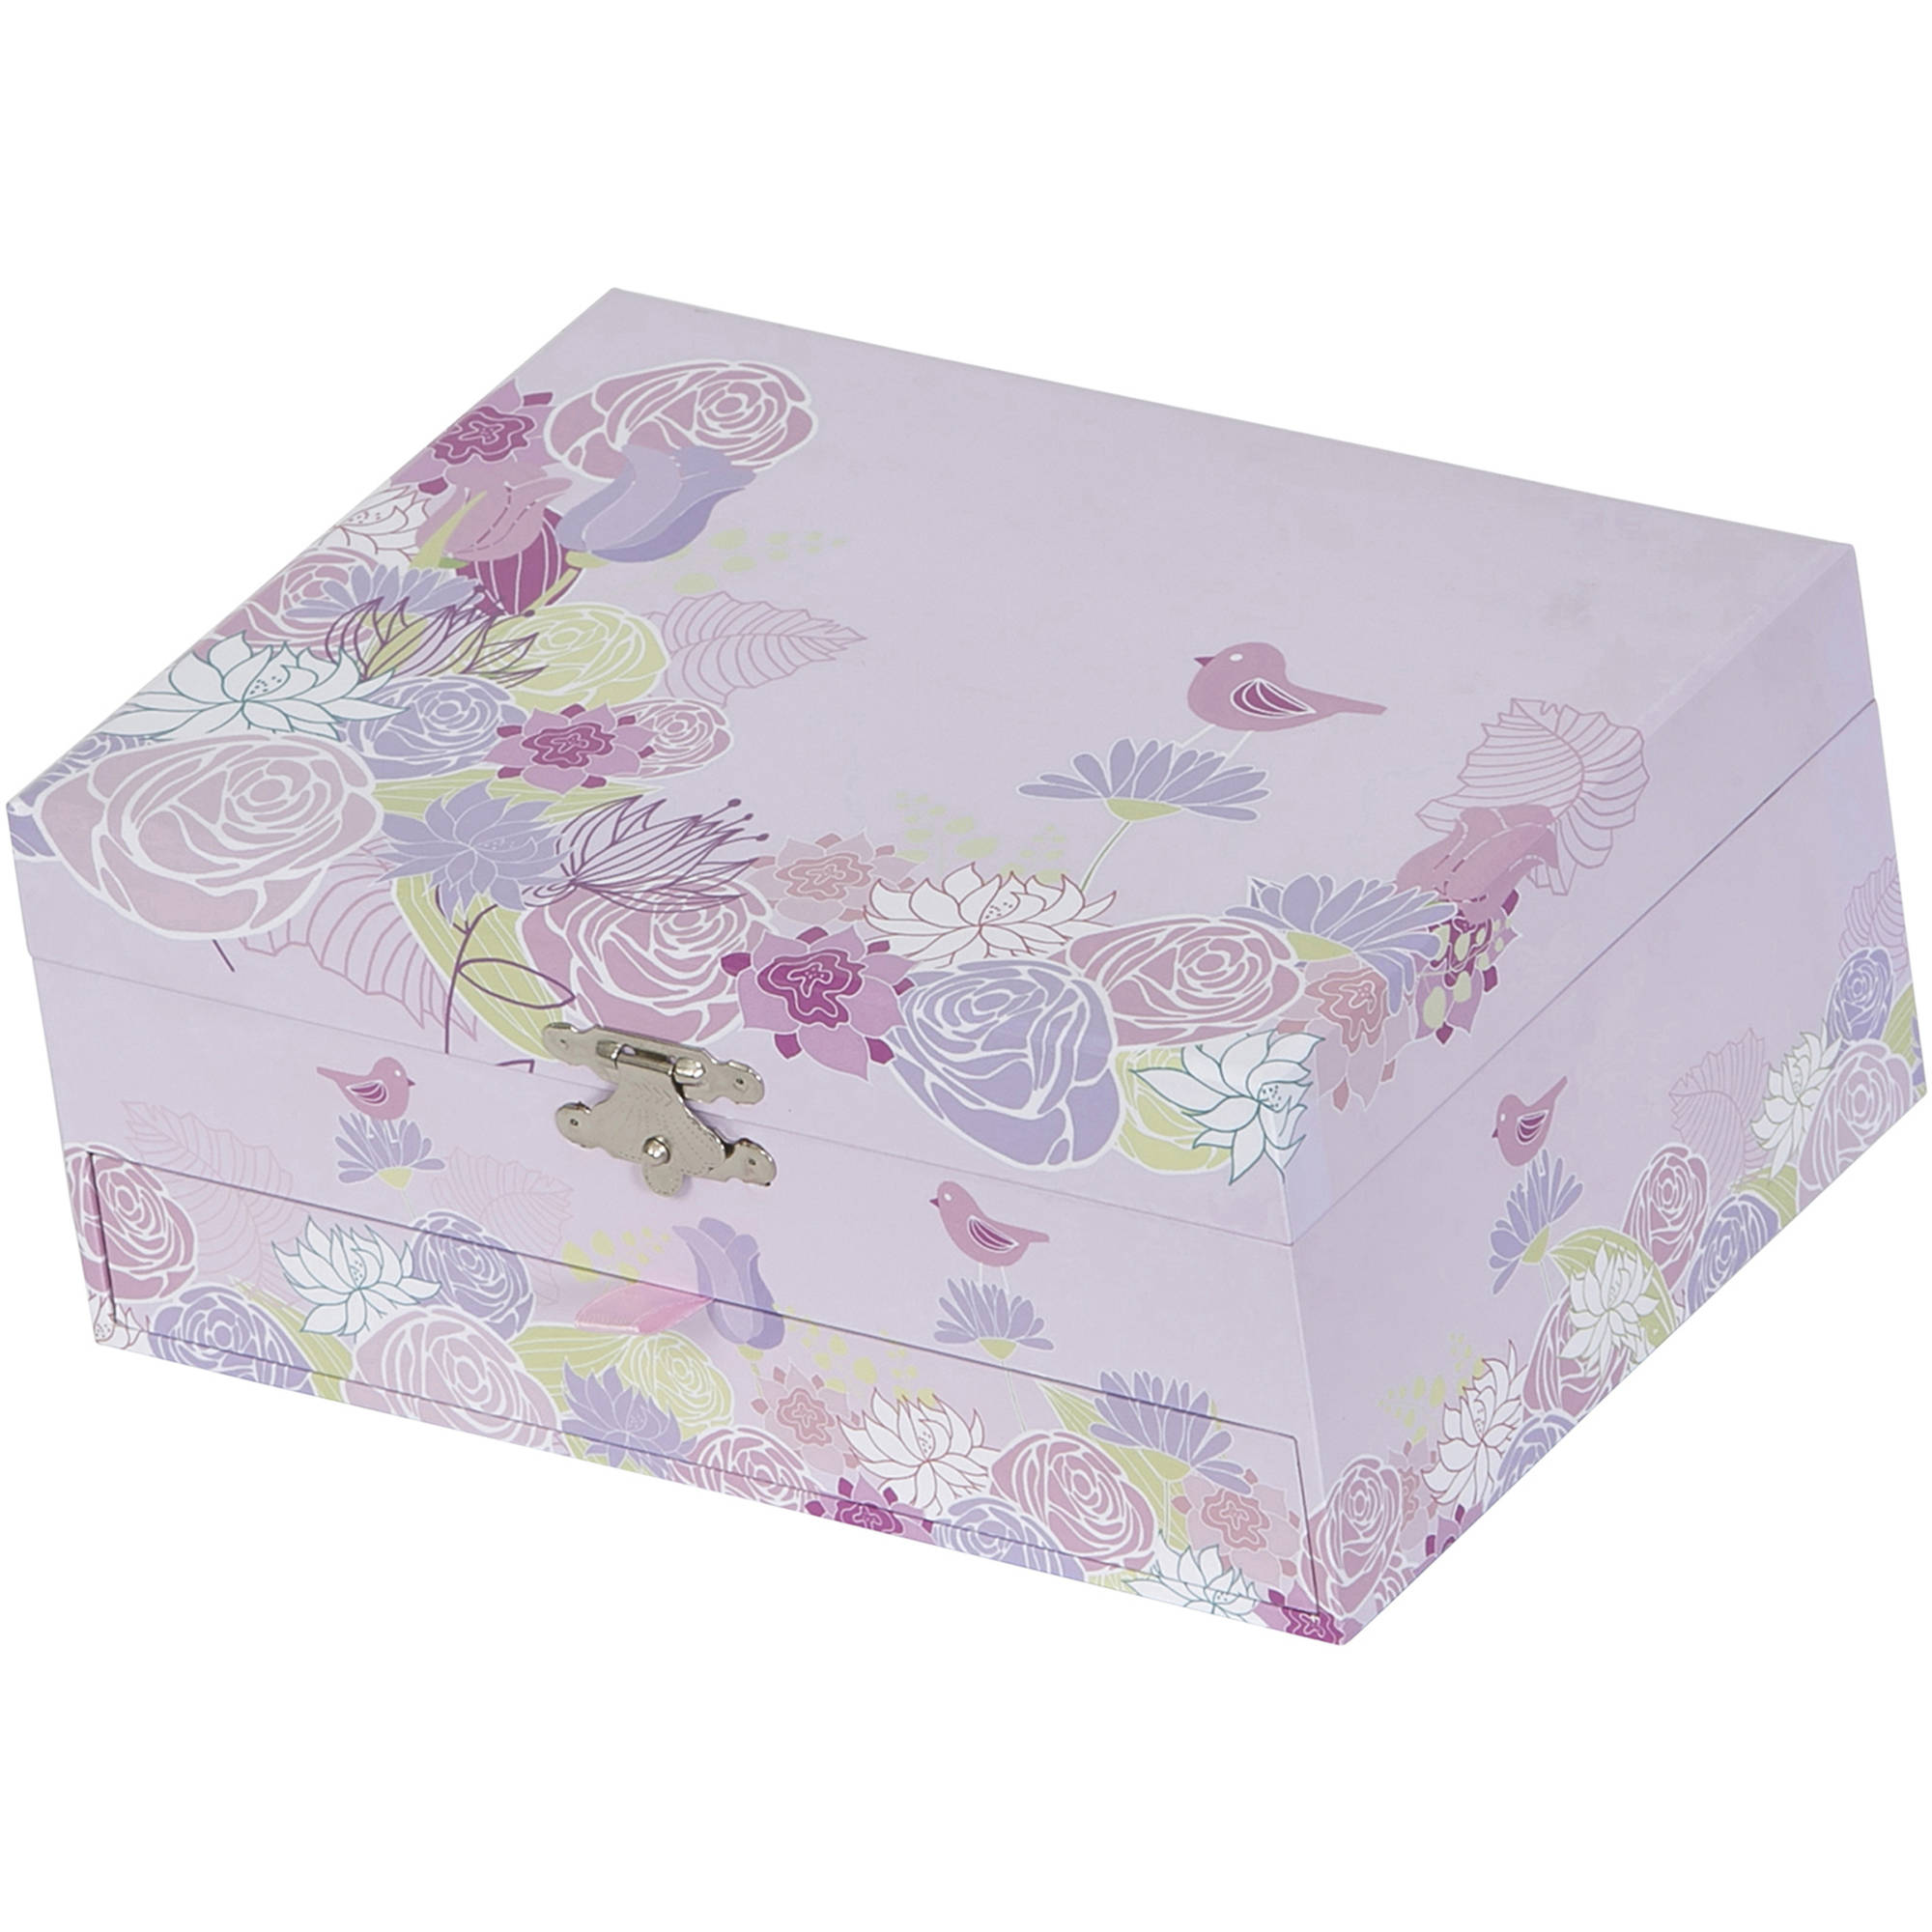 Cami Girl's Musical Ballerina Jewelry Box